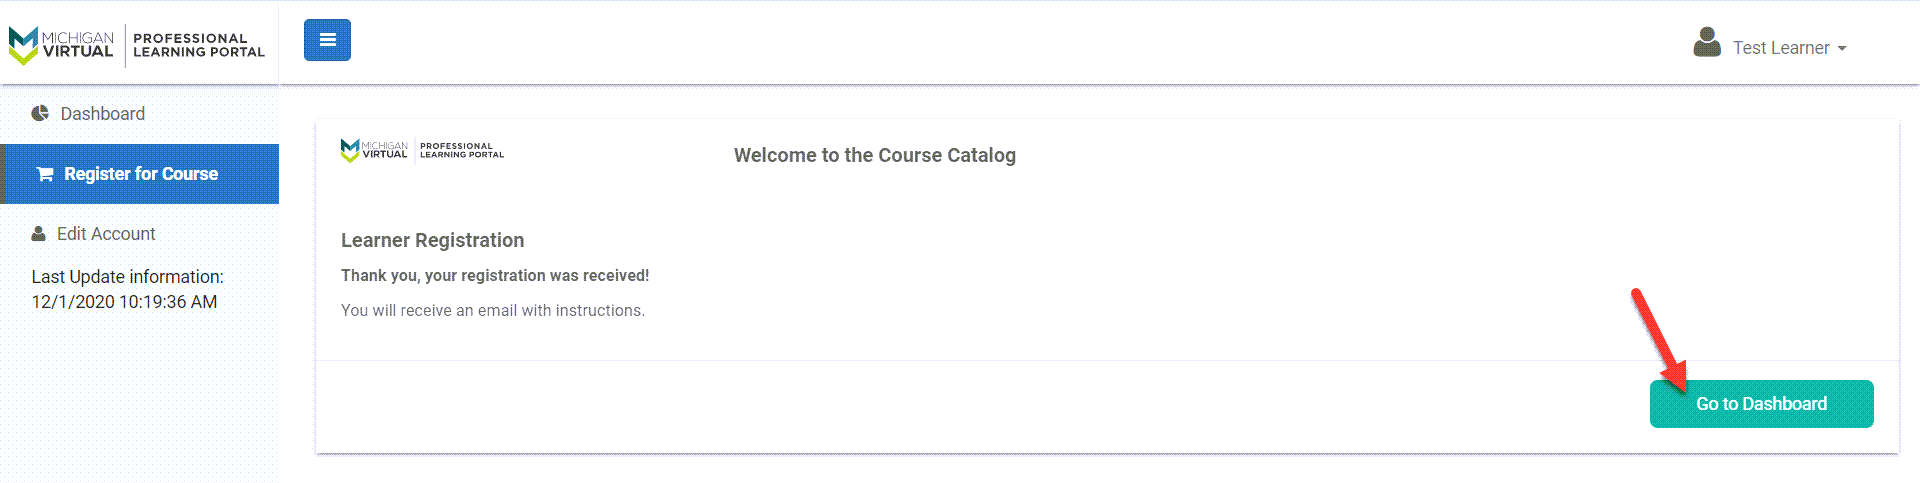 Confirmation message appears indicating successful enrollment. An arrow points to the Go to Dashboard button.